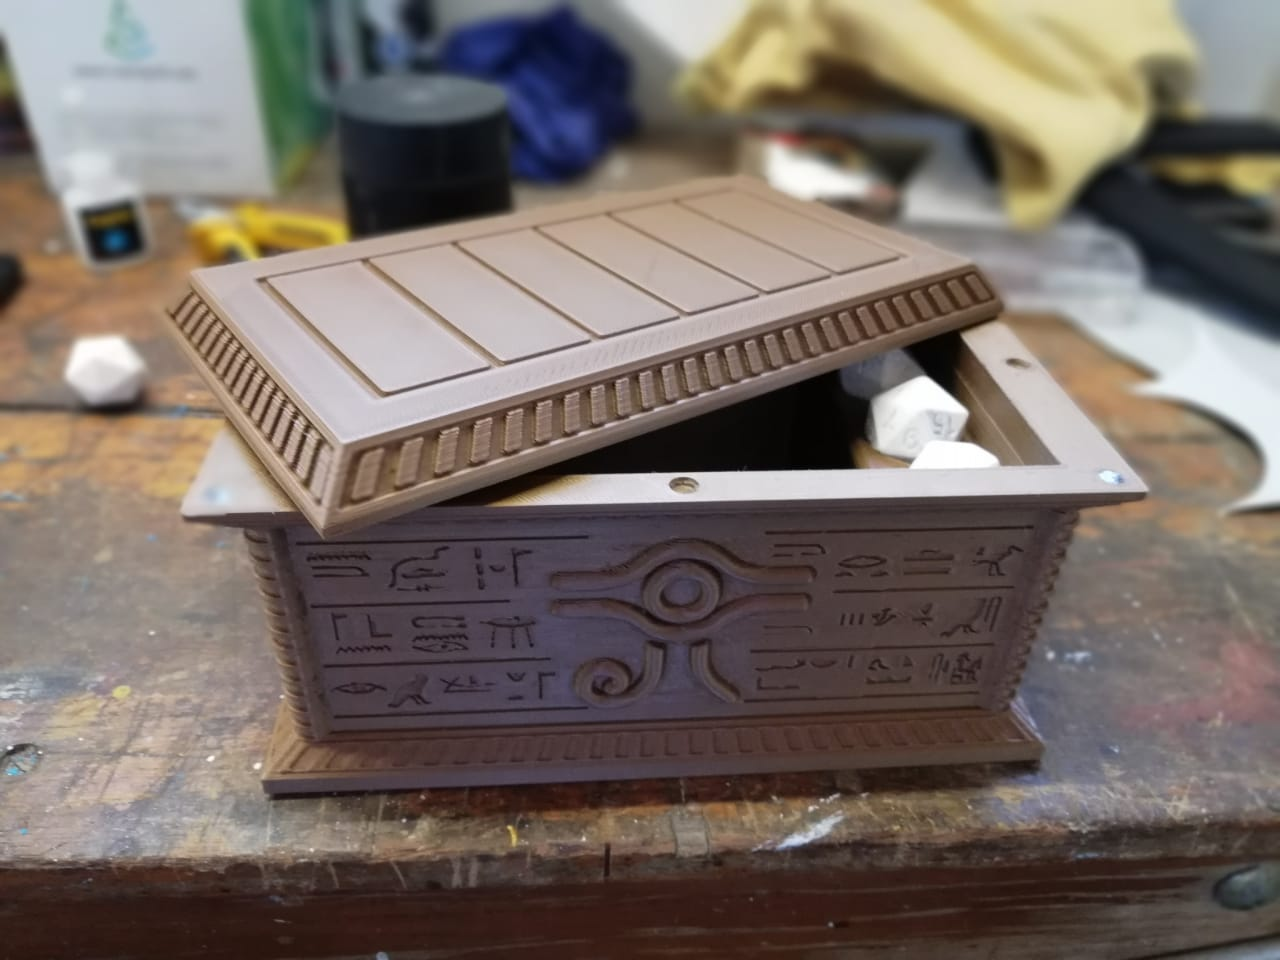 store your yu gi oh cards in this 3d printed millennium puzzle box